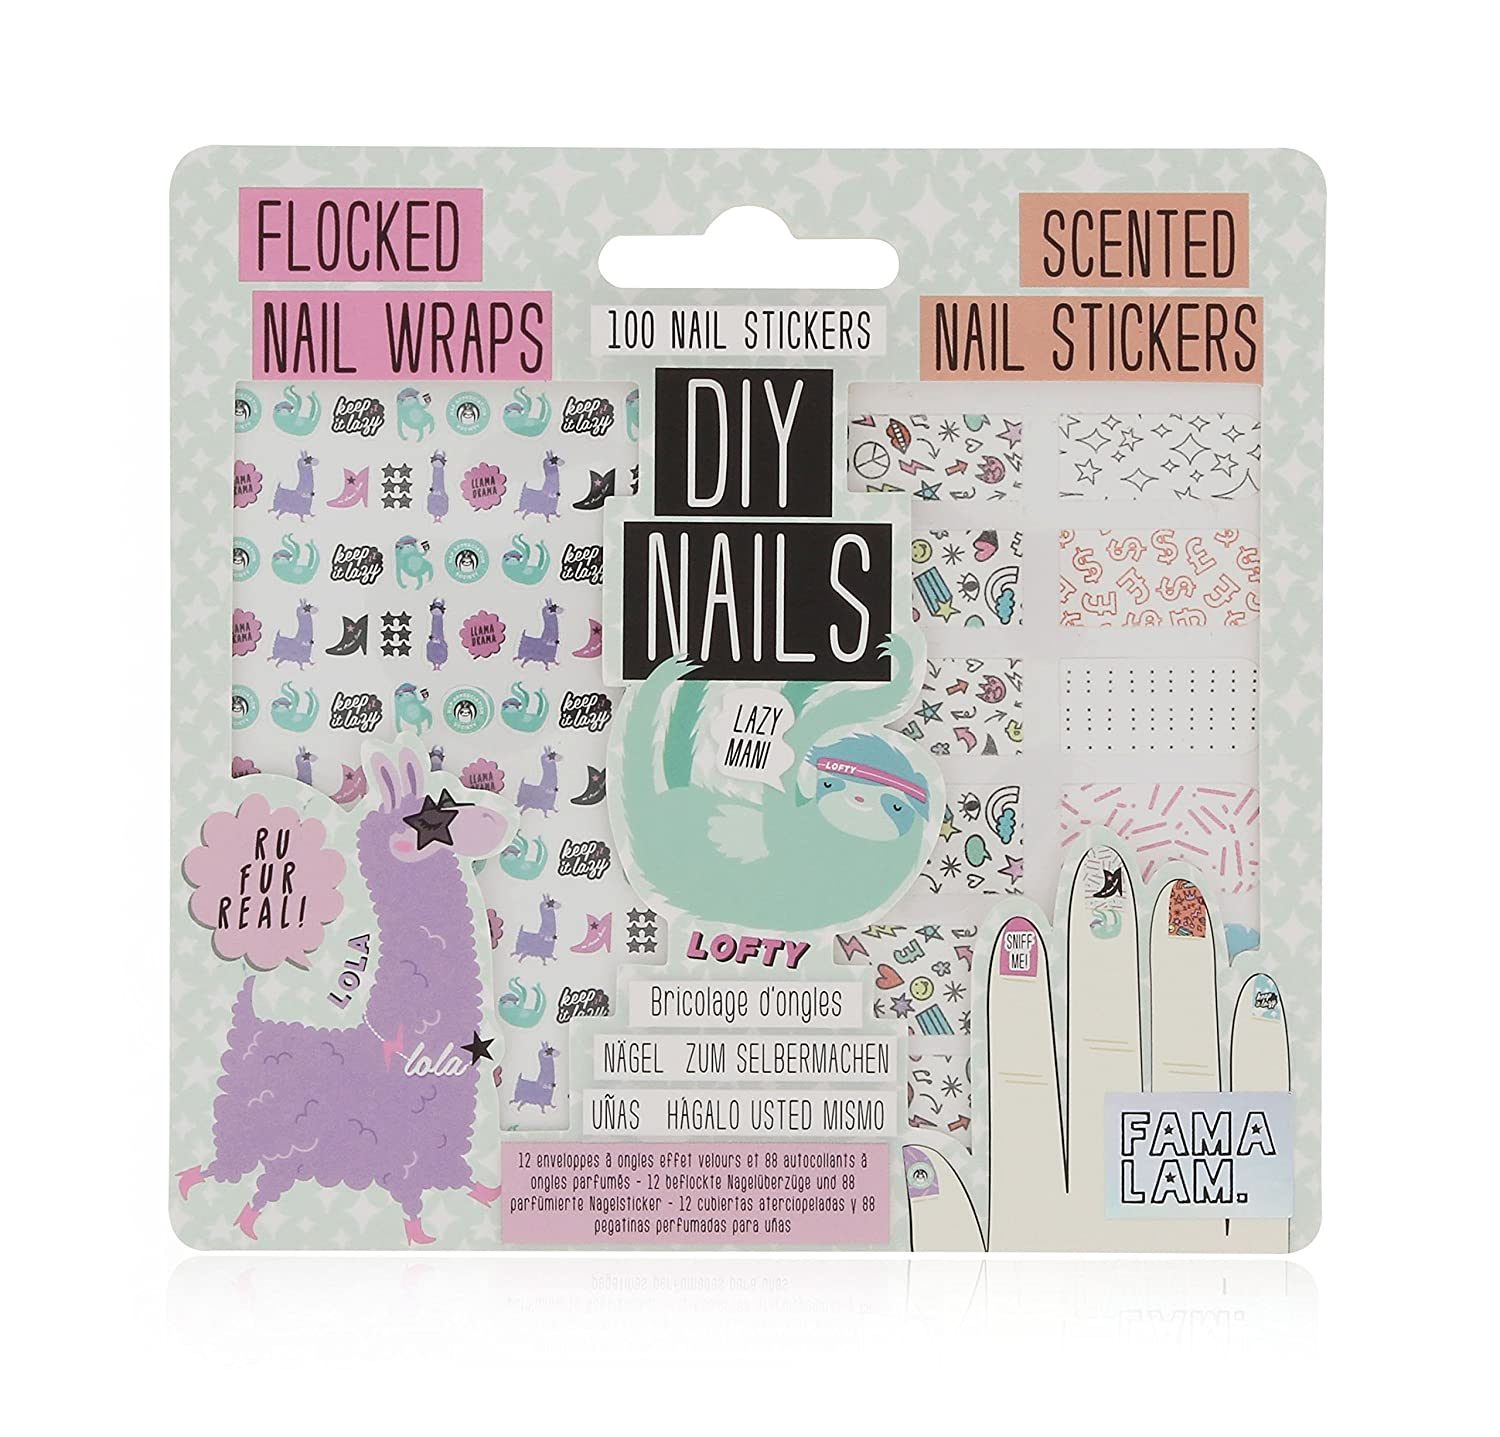 Amazon.com: NPW-USA Famalam Llama DIY Nail Wraps and Stickers, 100 ...